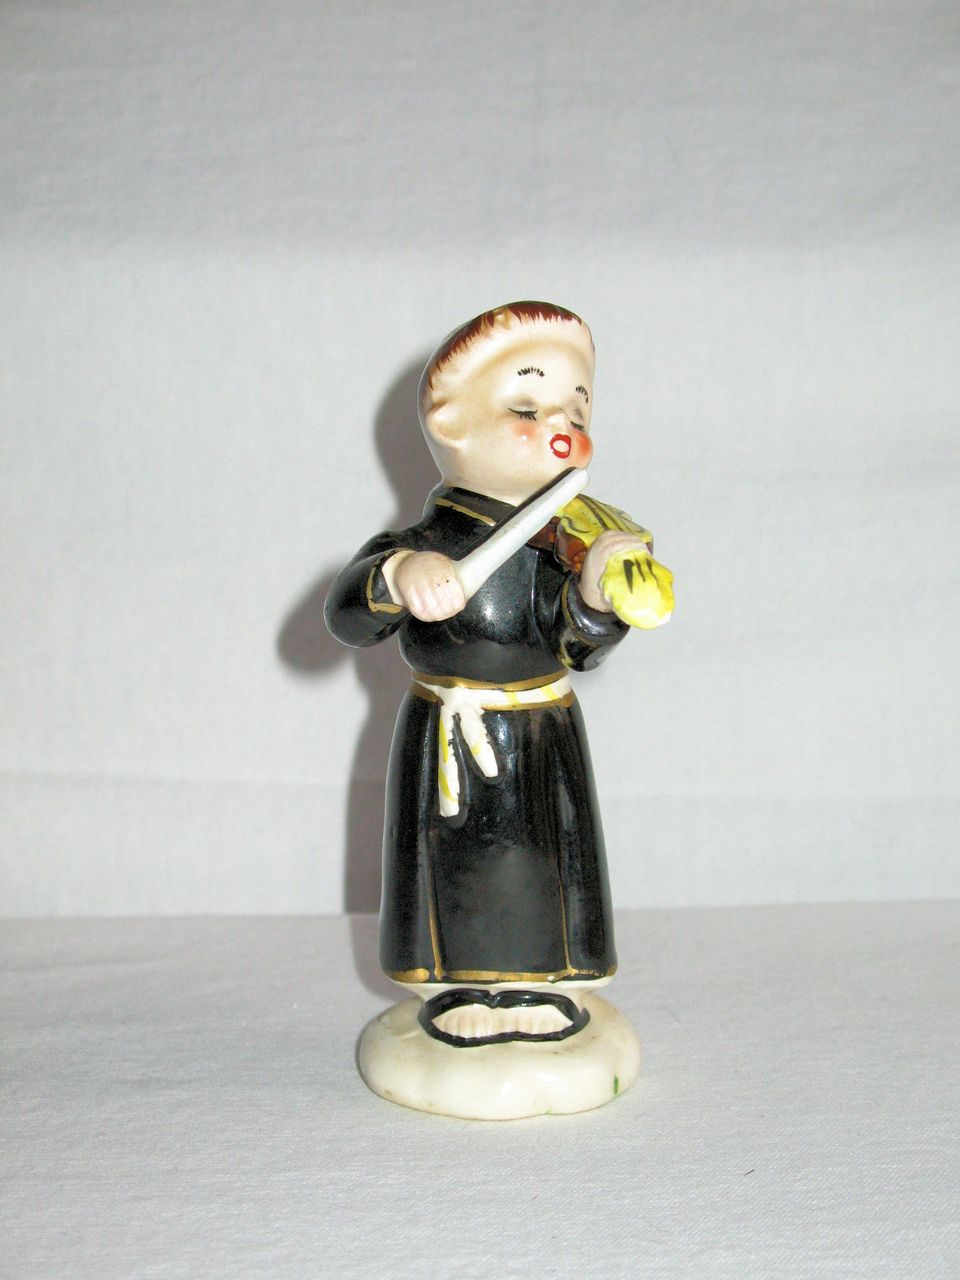 Porcelain figurine of a young Monk playing a violin